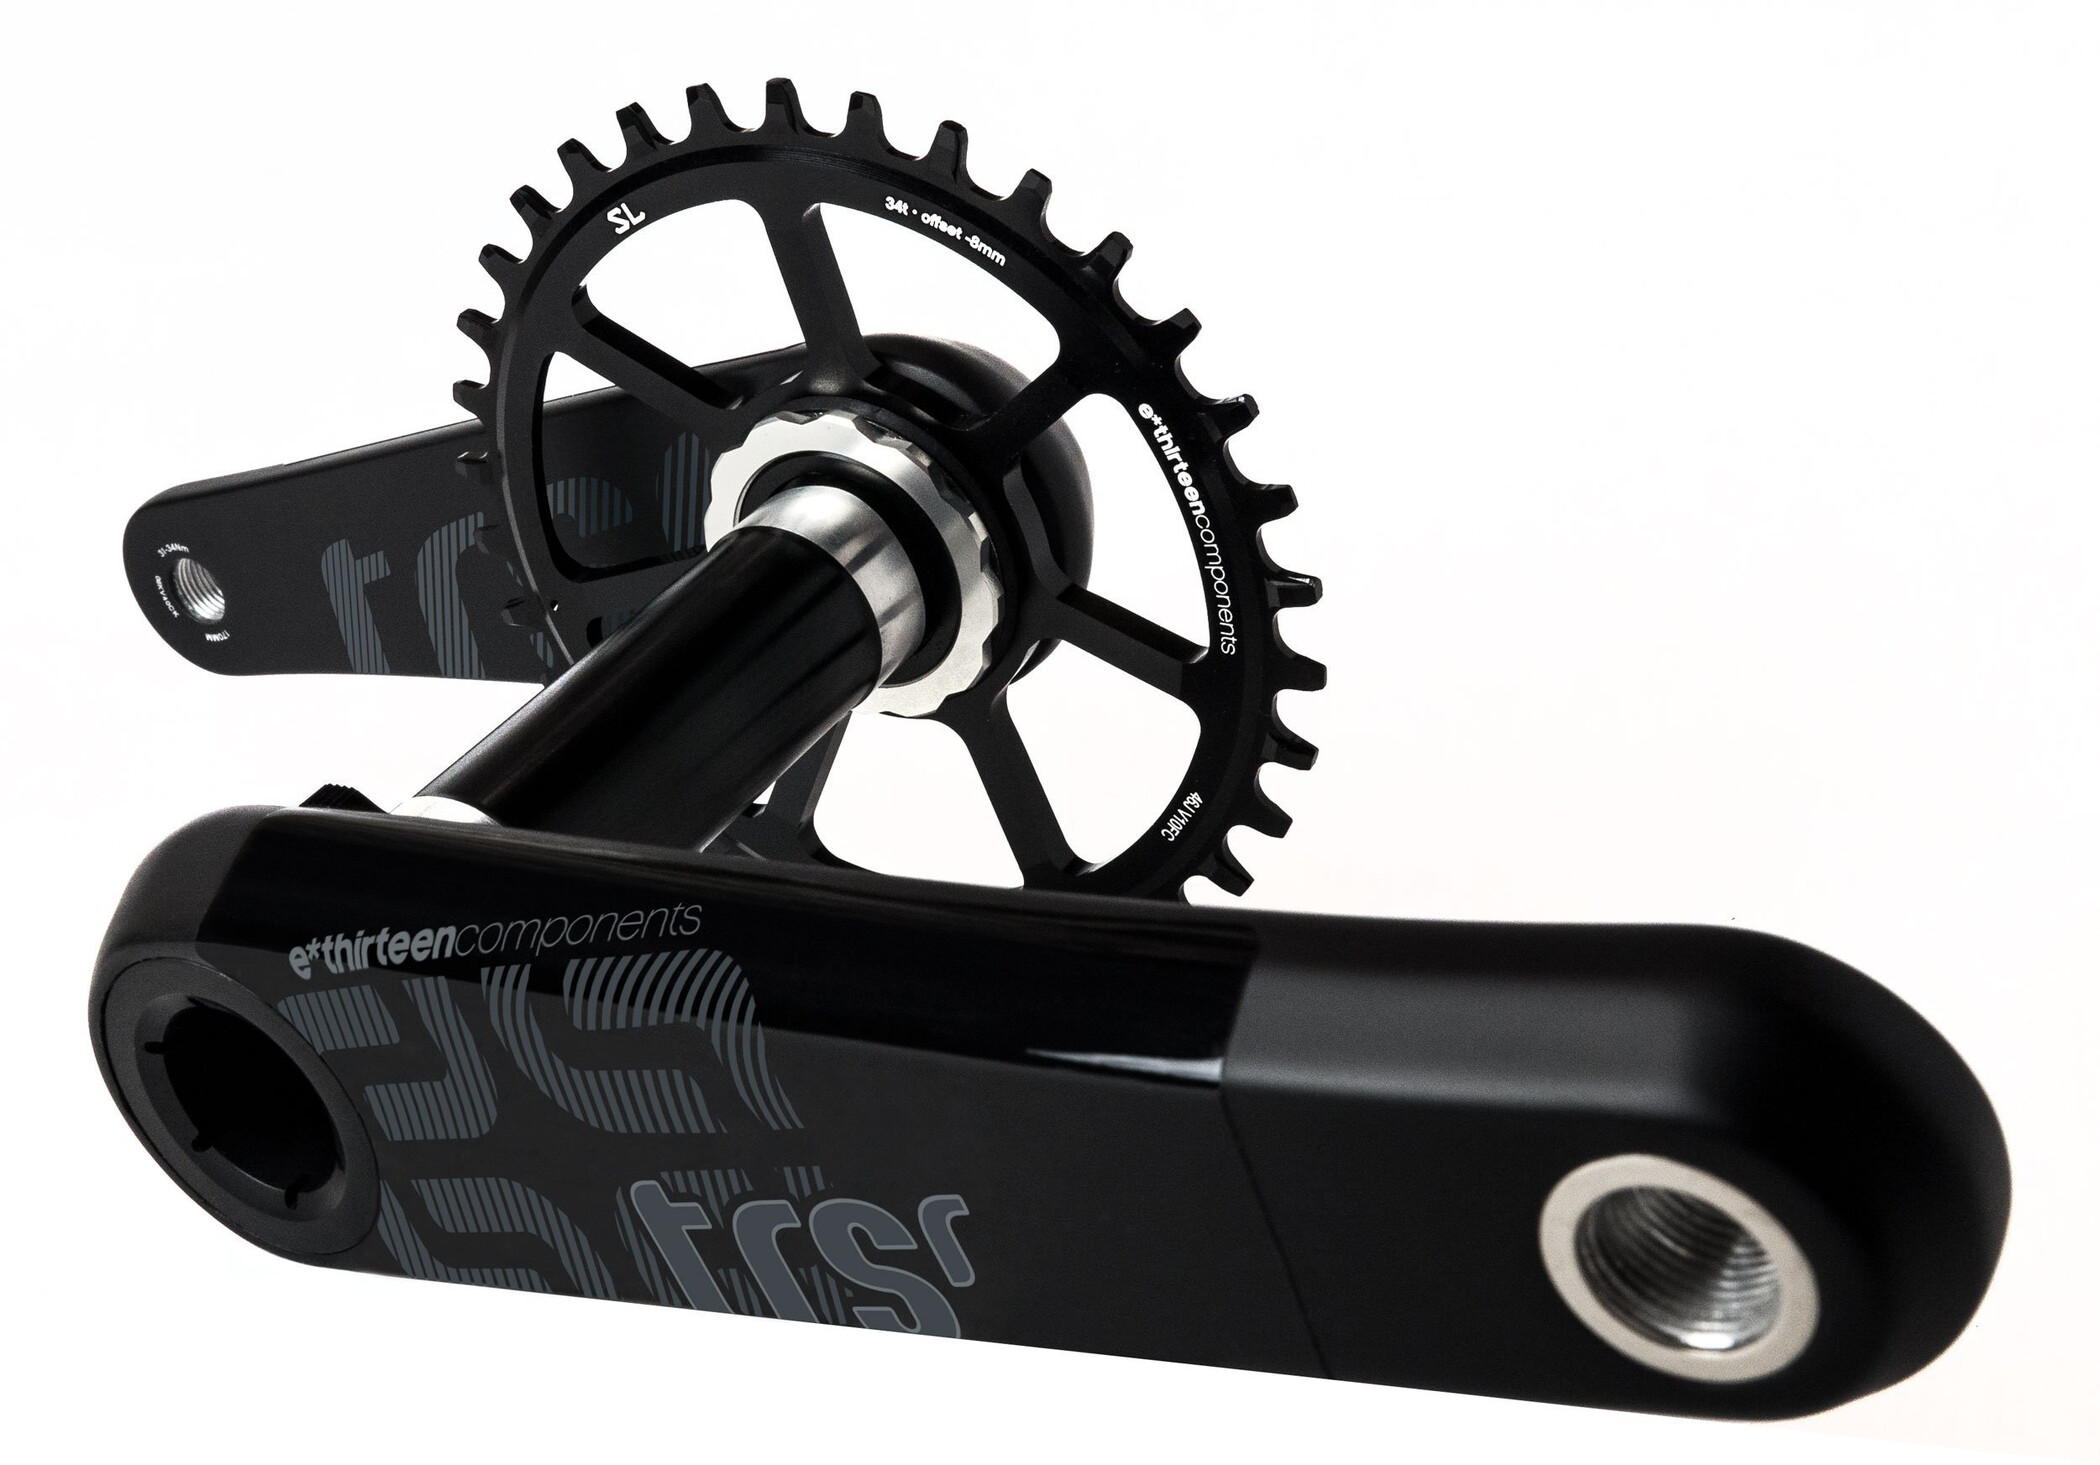 e*thirteen TRS Race Kranksæt 73mm Self-Extractor Carbon, black | Crankset